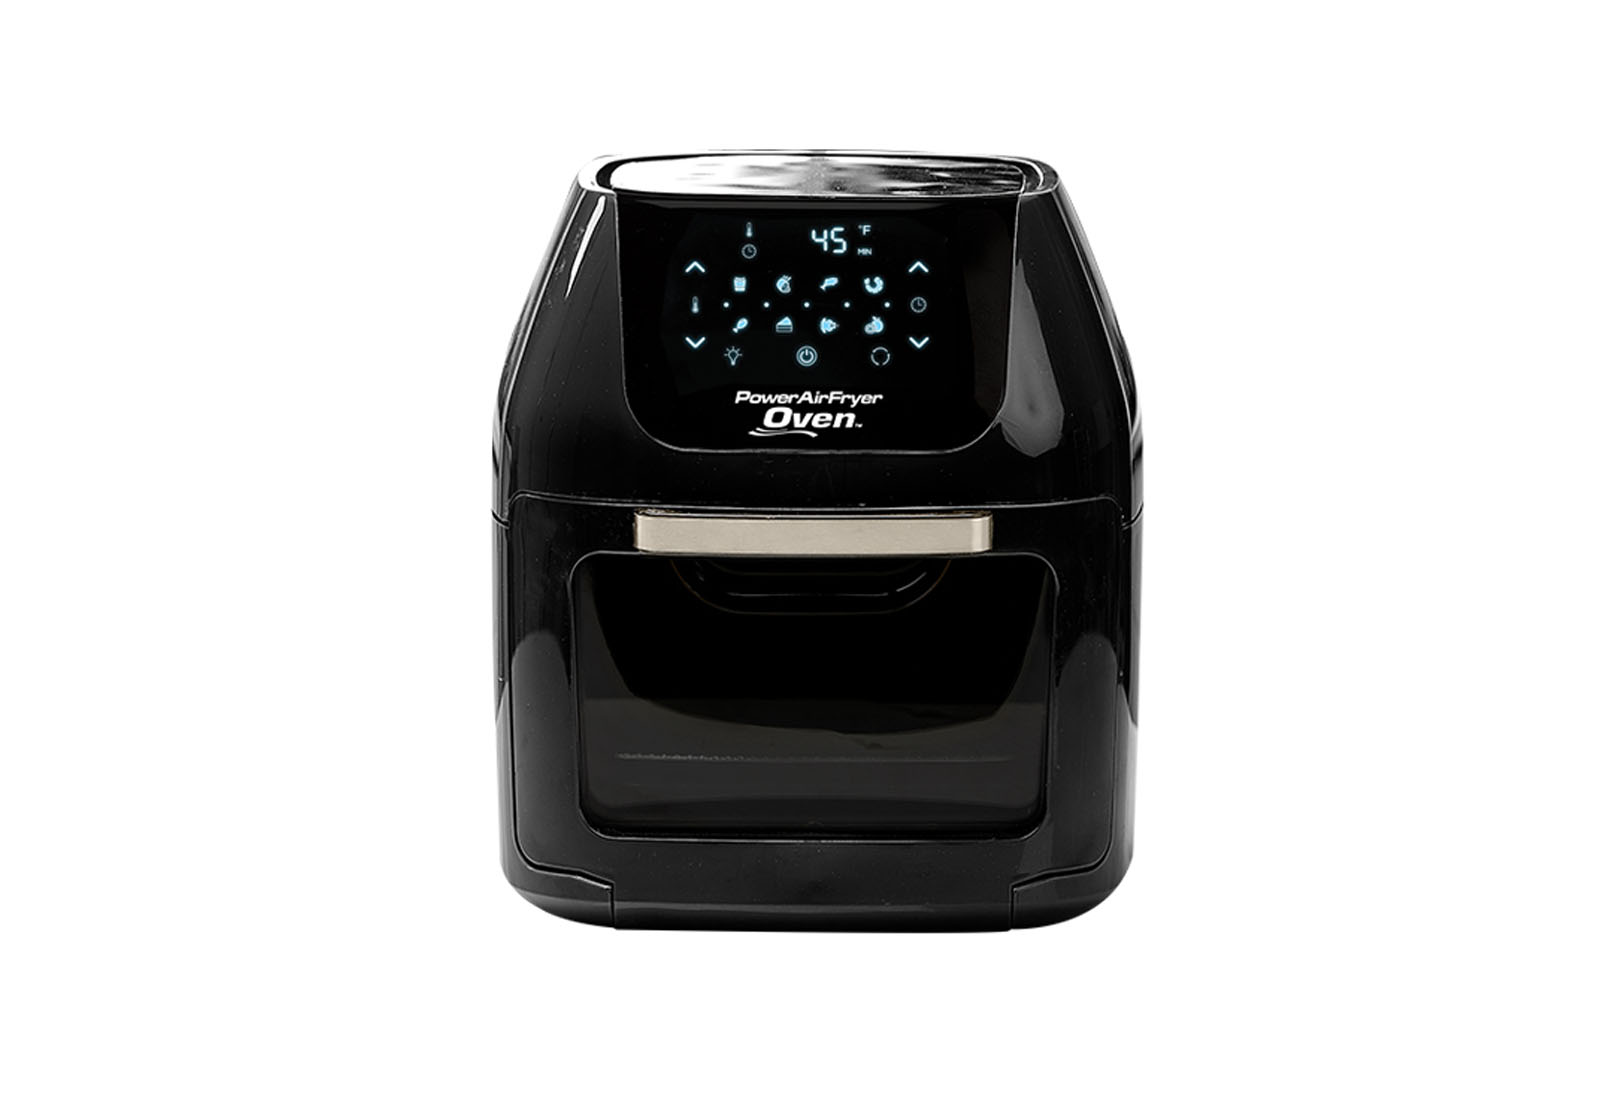 Power AirFryer Oven 6qt Product Image